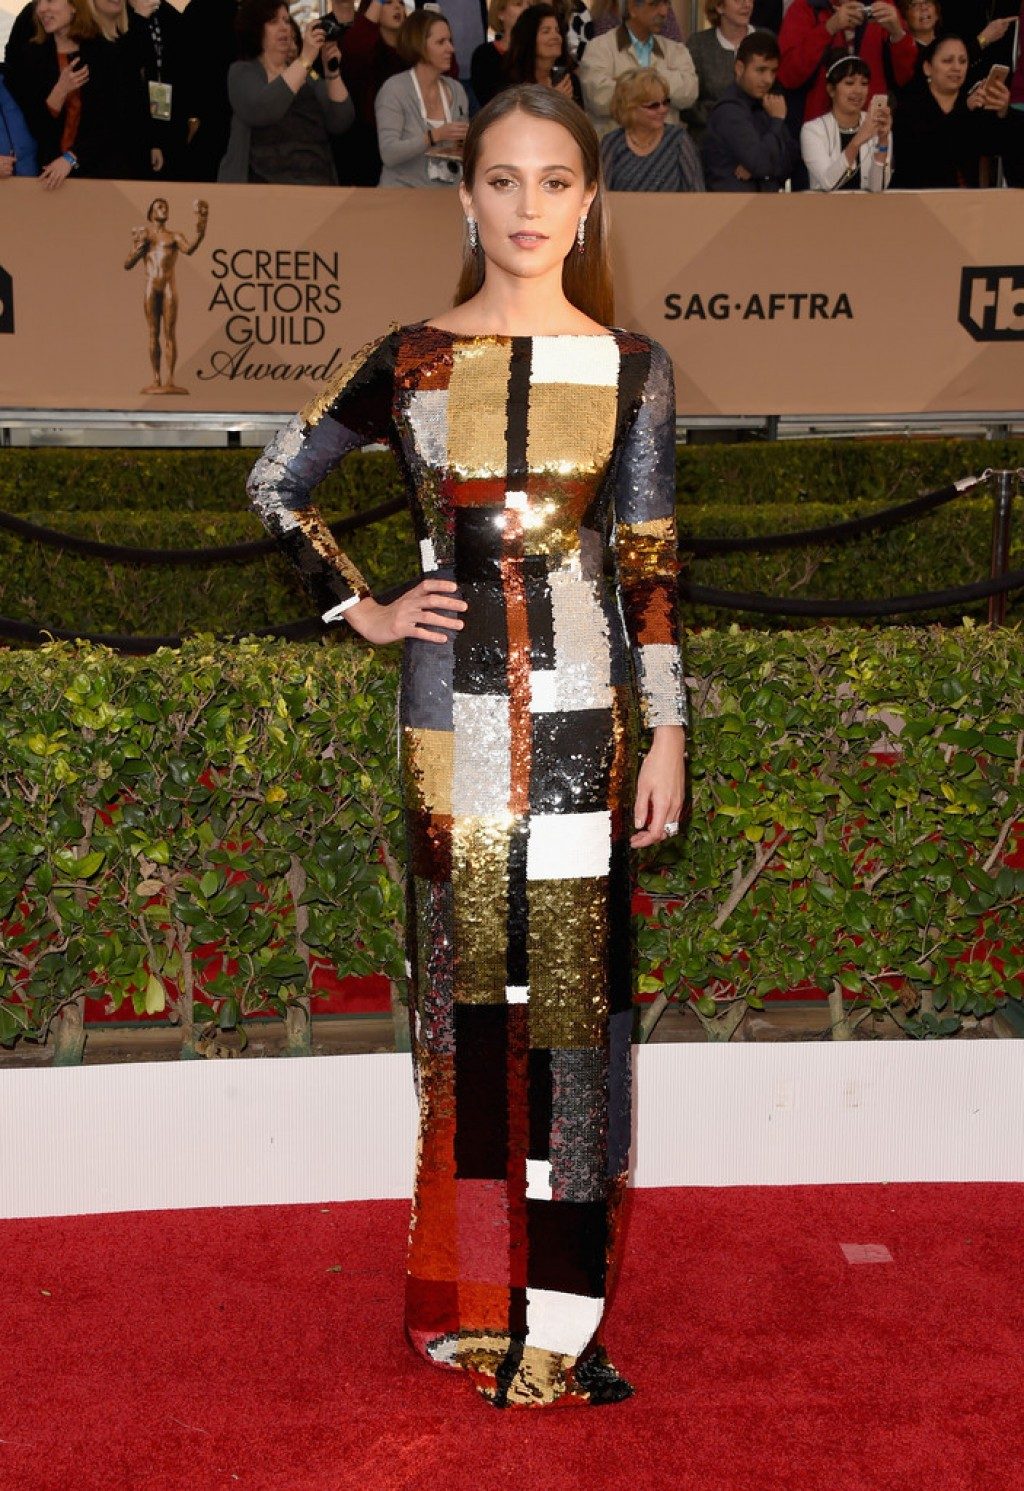 Screen-Actors-Guild-Awards-Alicia-VIkander-2016-1024x1491